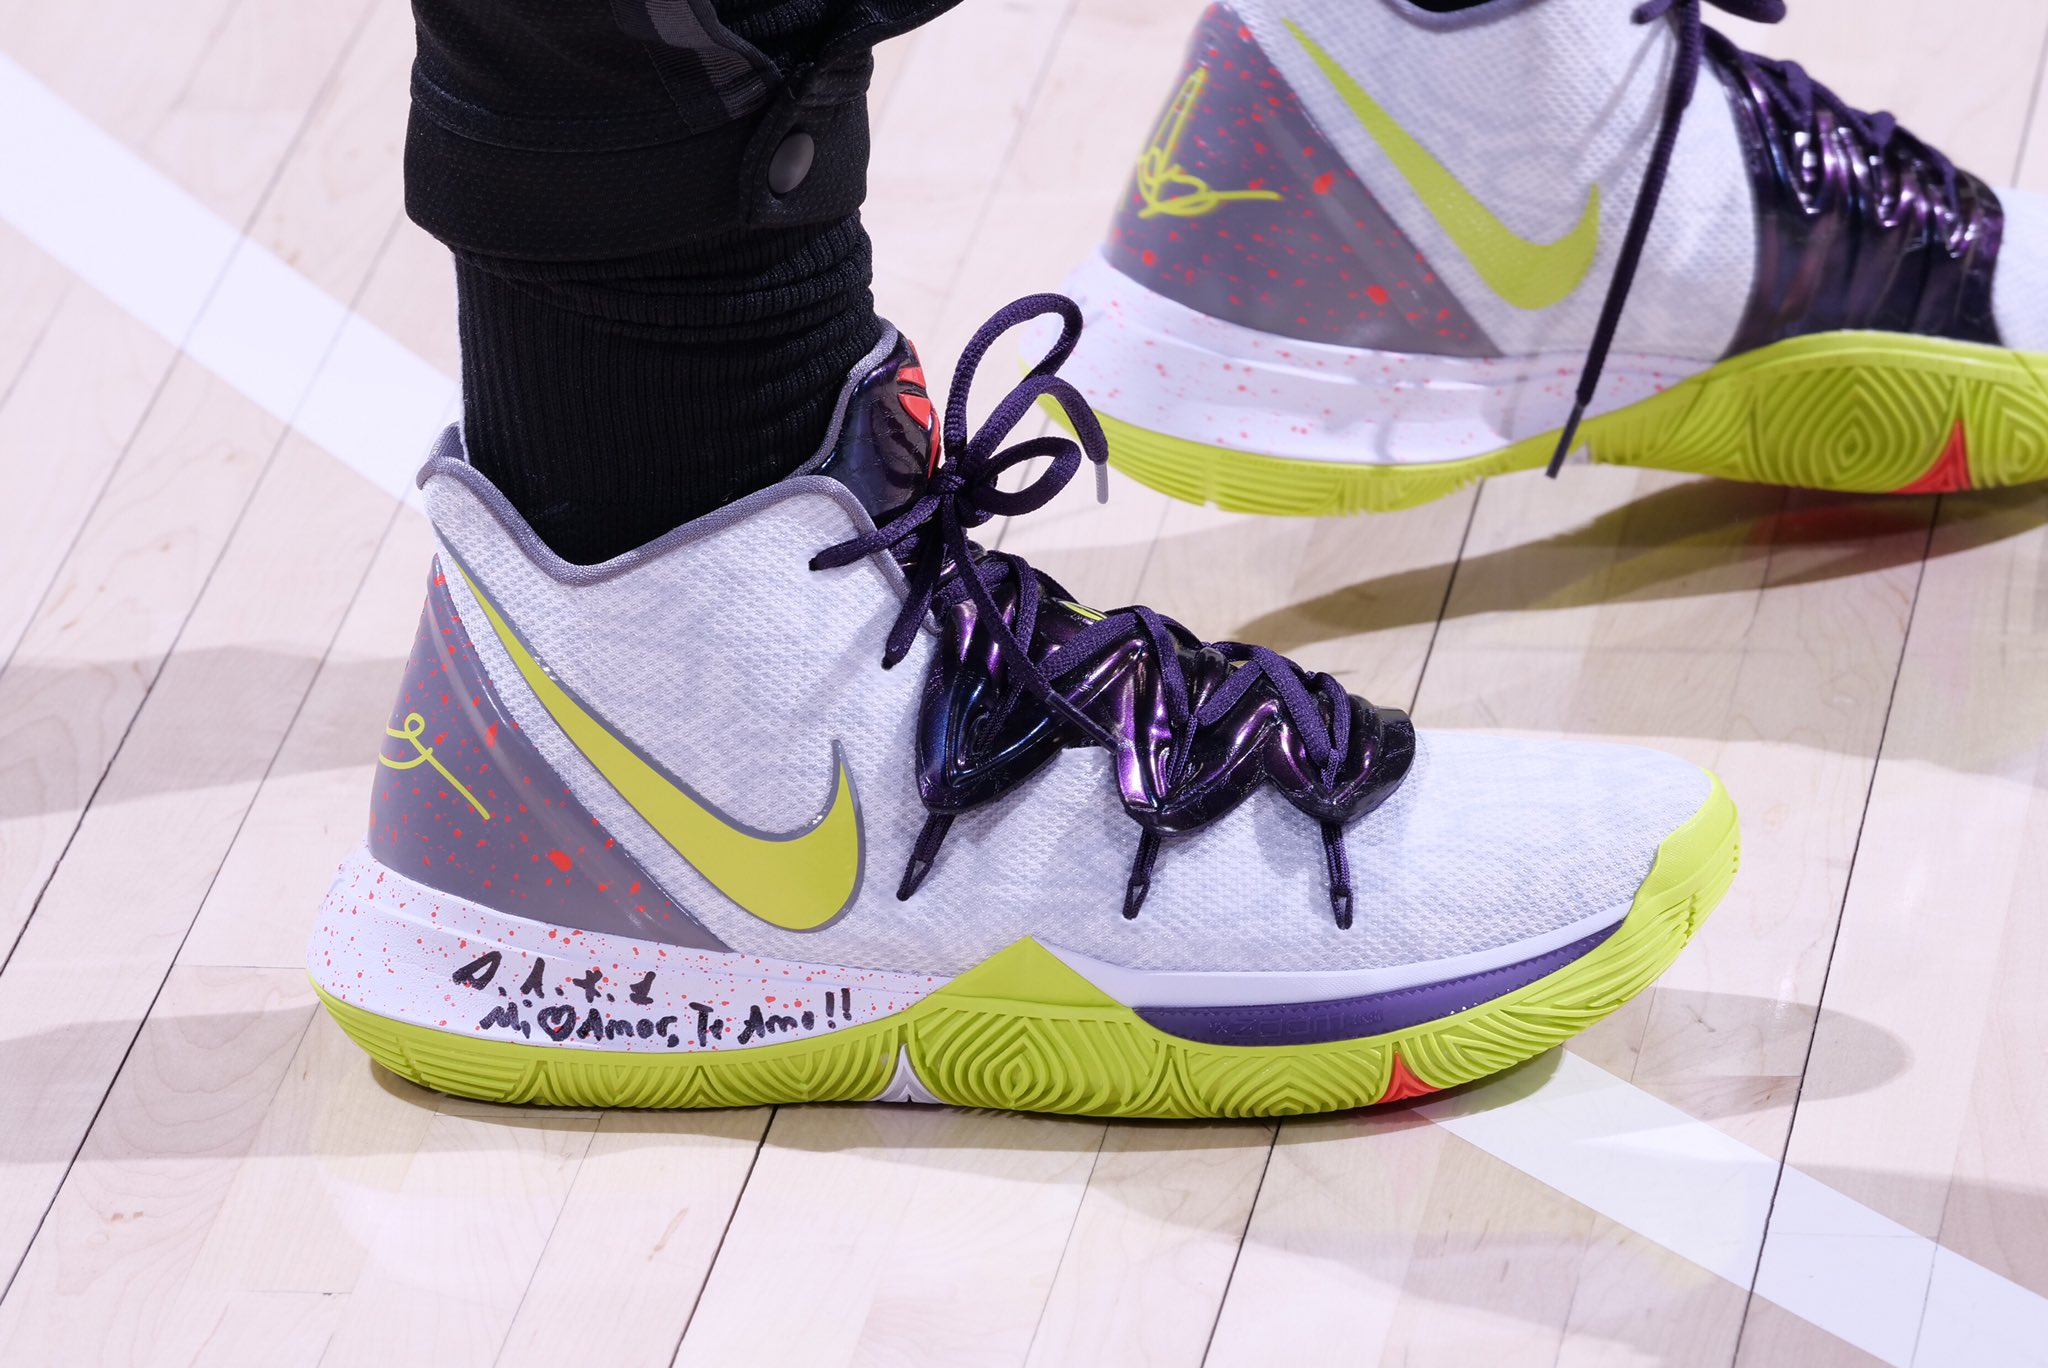 Kyrie Irving in the Mamba Mentality Nike Kyrie 5 - Boston Celtics vs. Indiana Pacers | April 5, 201917 Points6 Assists3 Rebounds7-14 Shooting